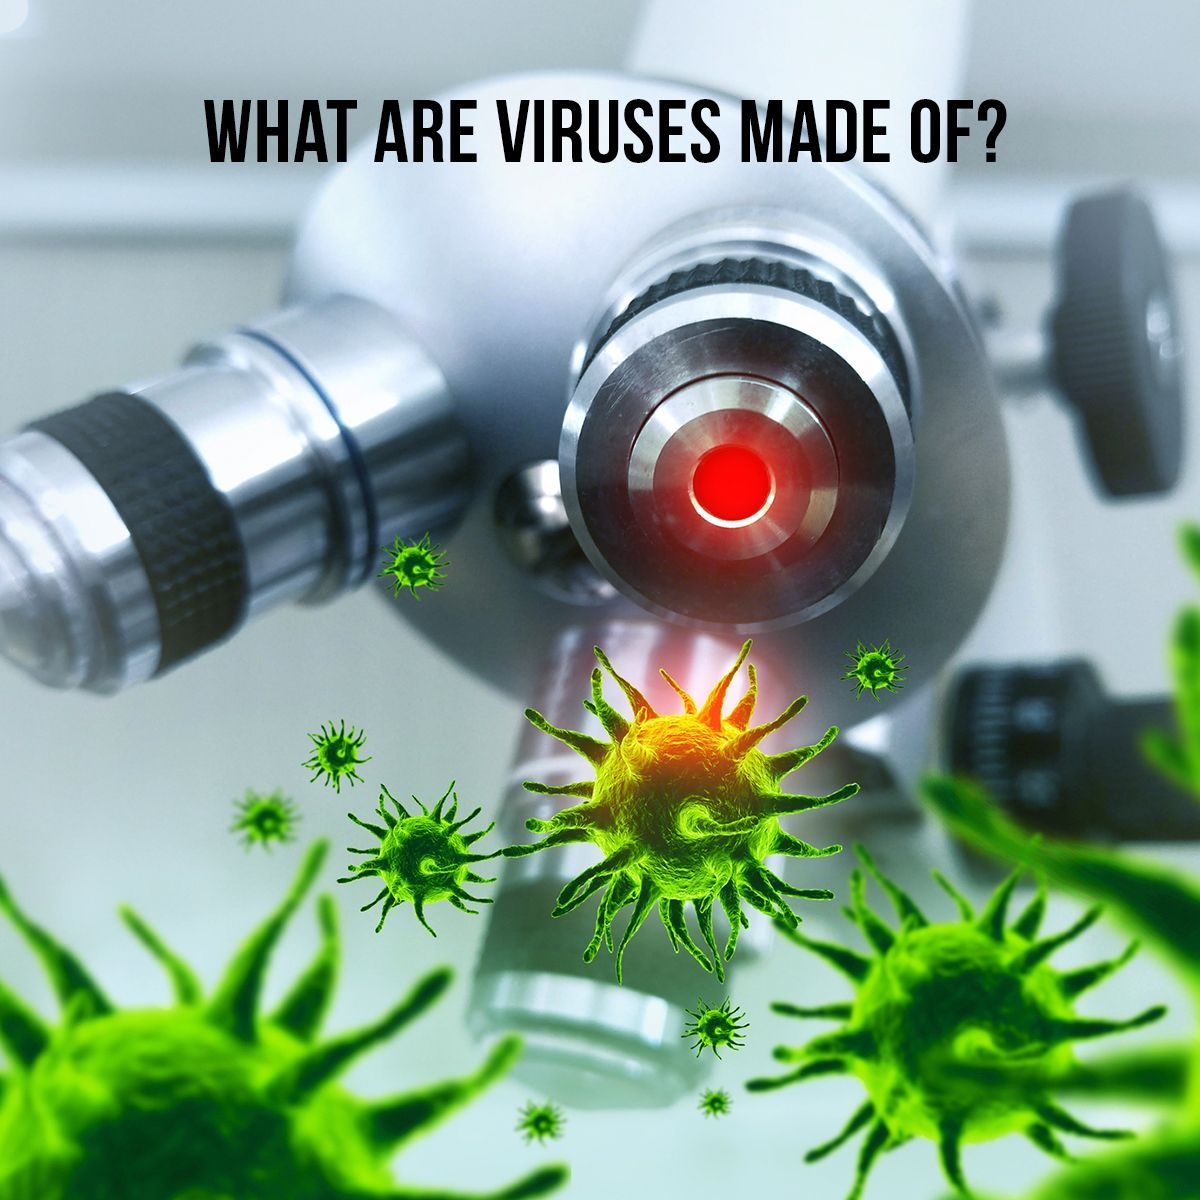 What Are Viruses Made Of?